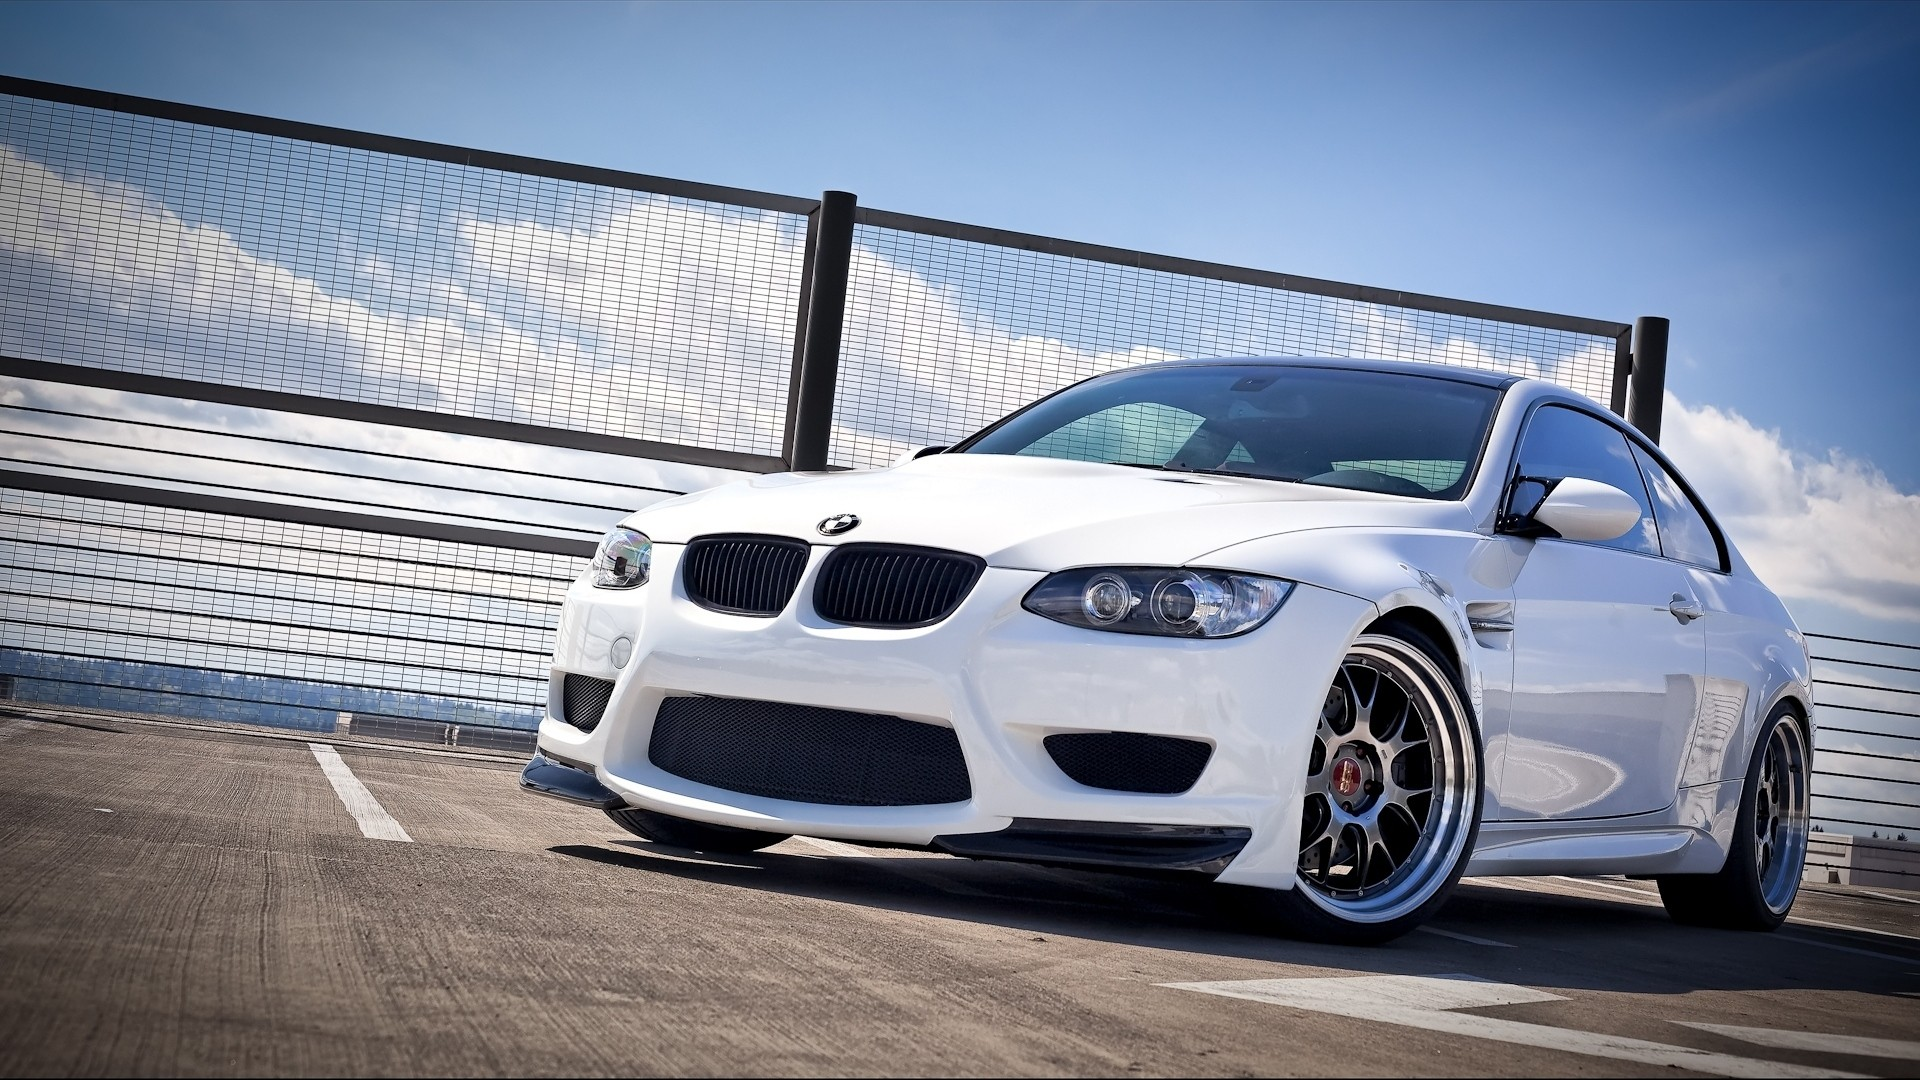 bmw wallpaper white image - photo #32